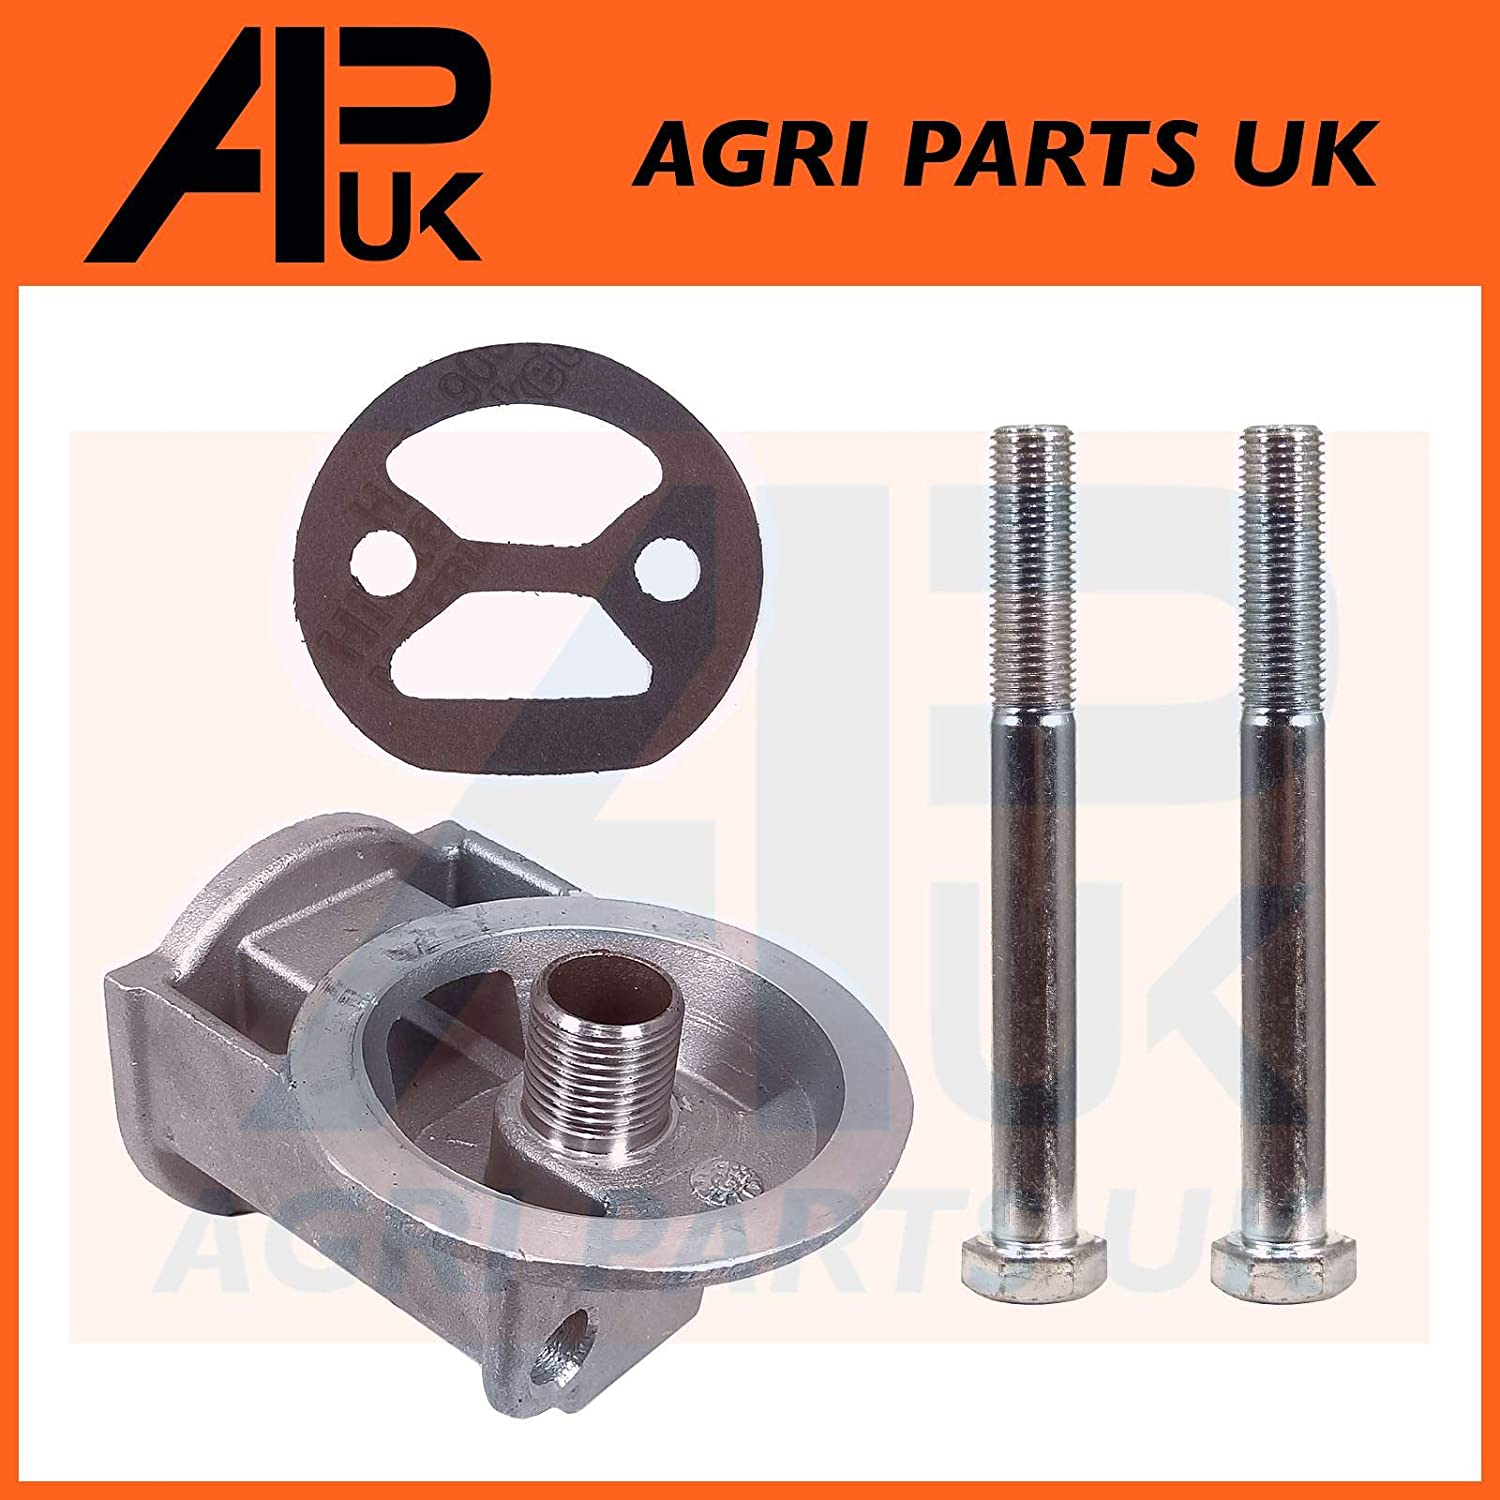 APUK Spin on Filter Head /& Gasket Bolts Compatible with Massey Ferguson 35 35X 65 133 135 Tractor